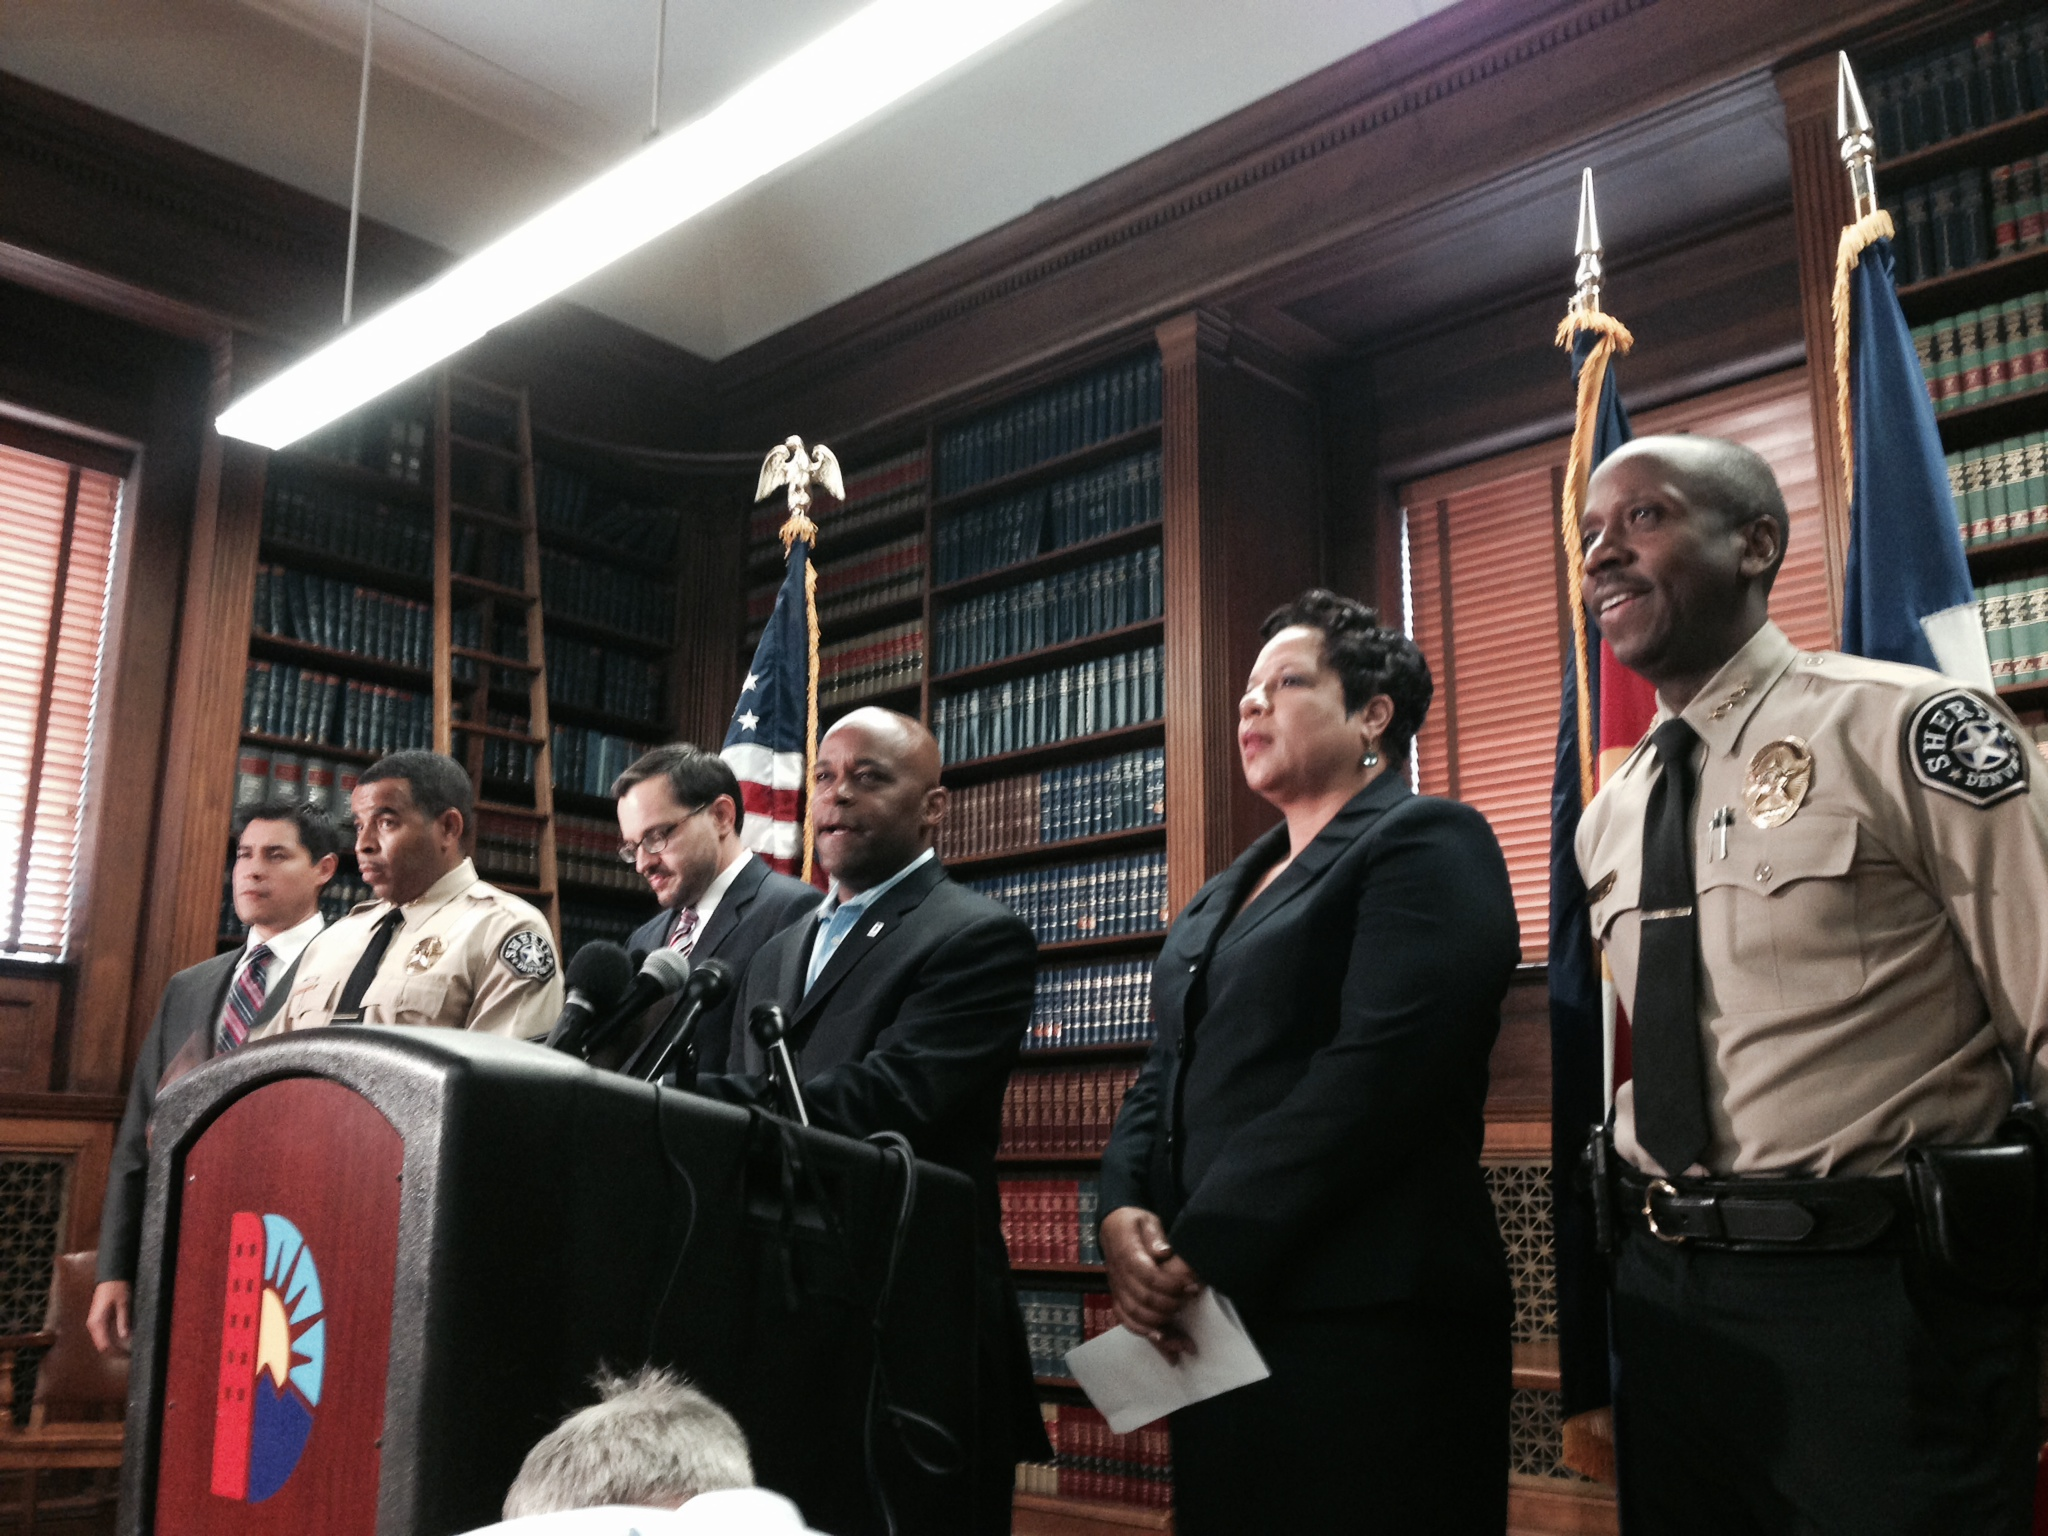 "<p>Flanked by city officials, Denver Mayor Michael B. Hancock, center, announces the resignation of Sheriff <span style=""line-height: 1.66667em;"">Gary Wilson, at far right, on Monday, July 21, 2014.</span></p>"